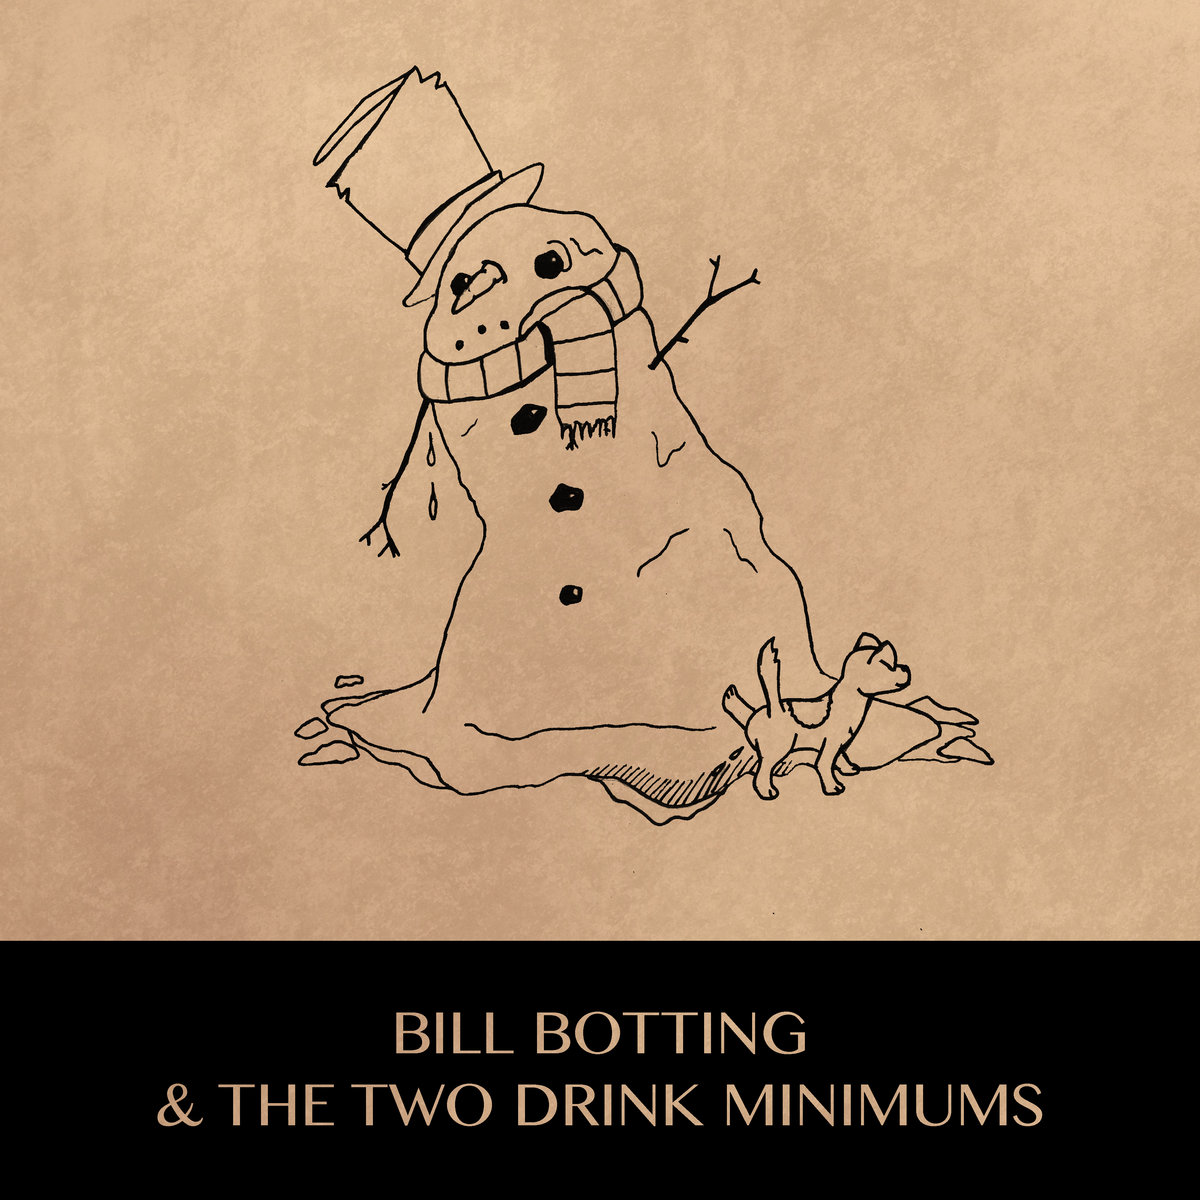 Bill Botting & The Two Drink Minimums - It's Not Christmas Anymore